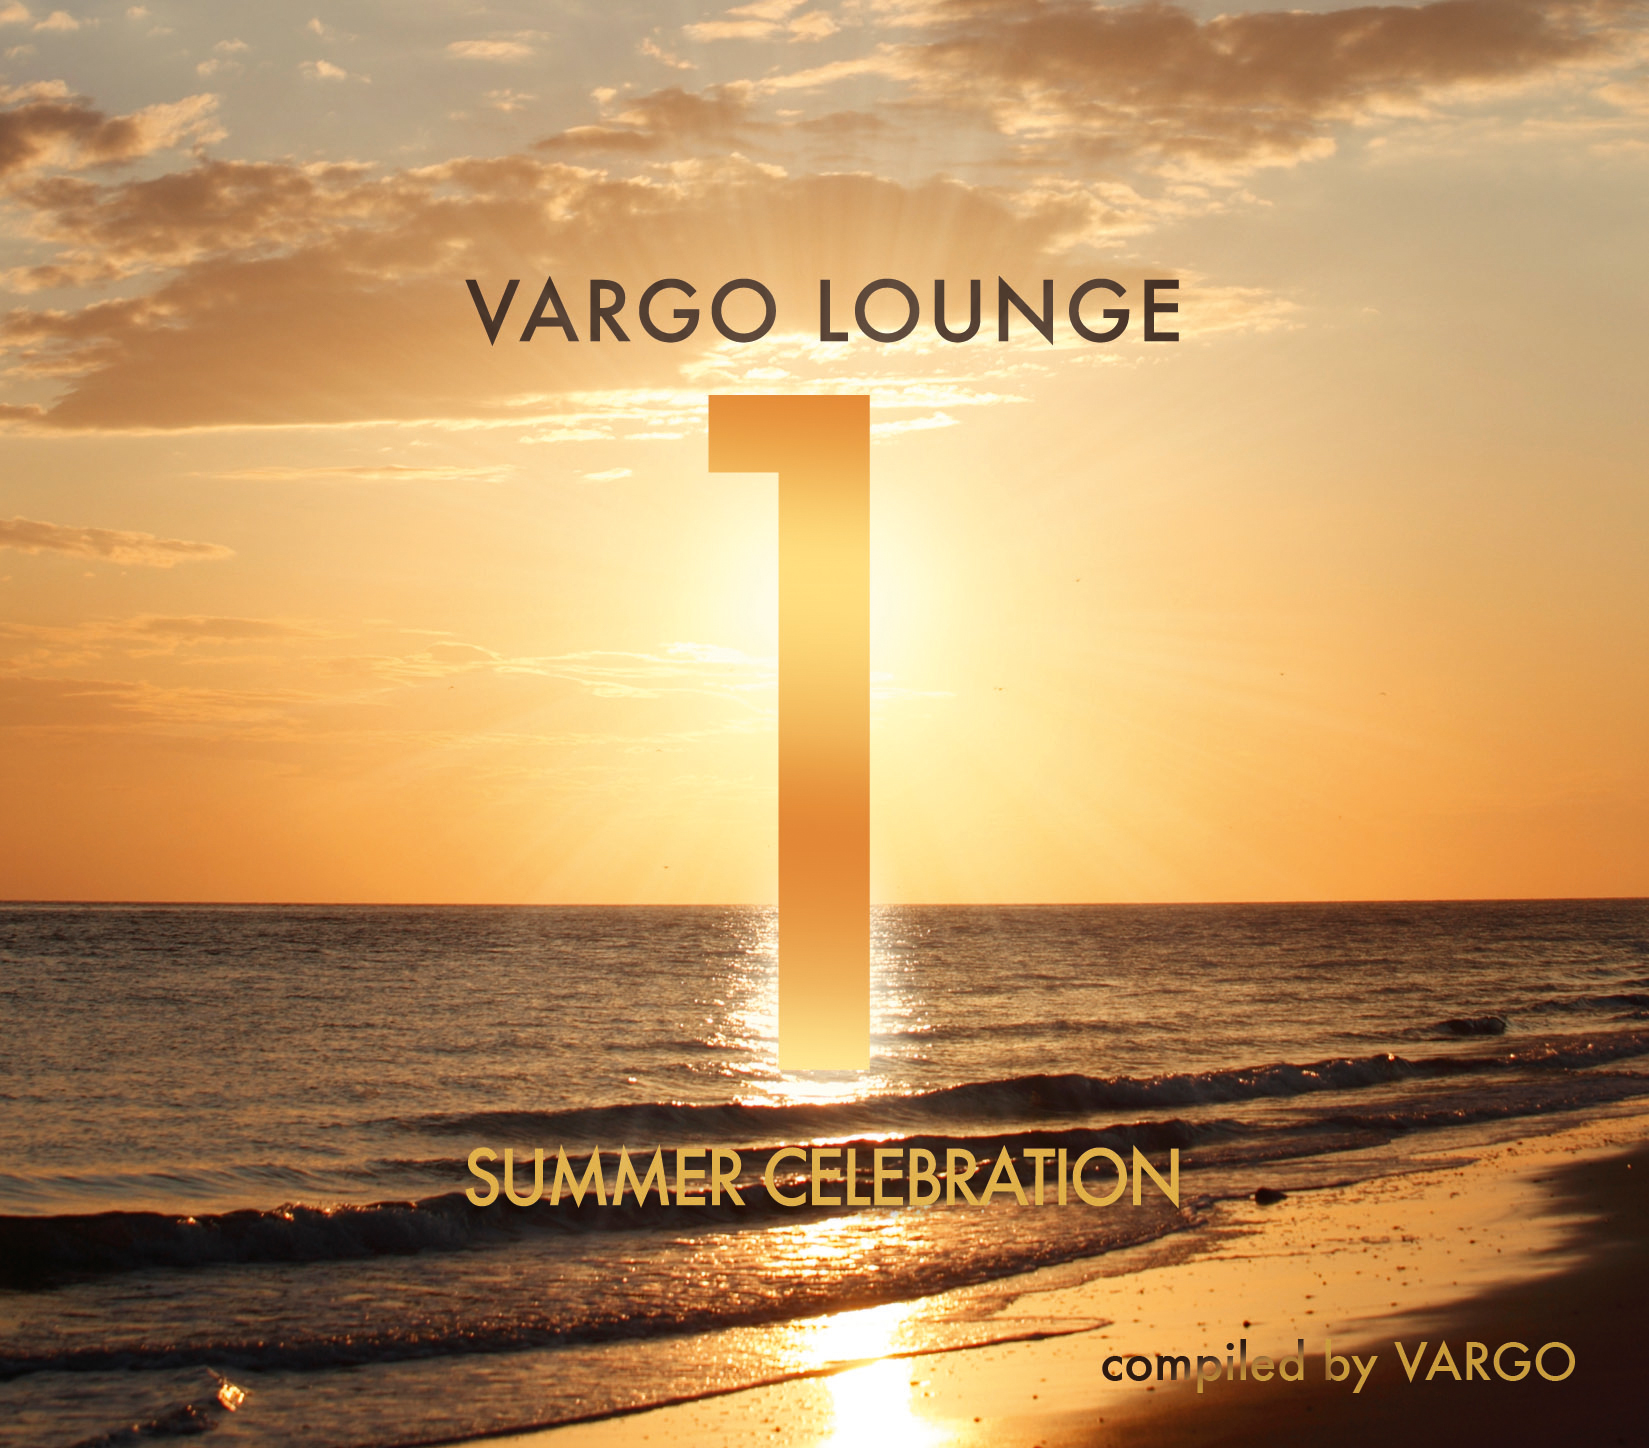 Vargo Lounge - Summer Celebration 1